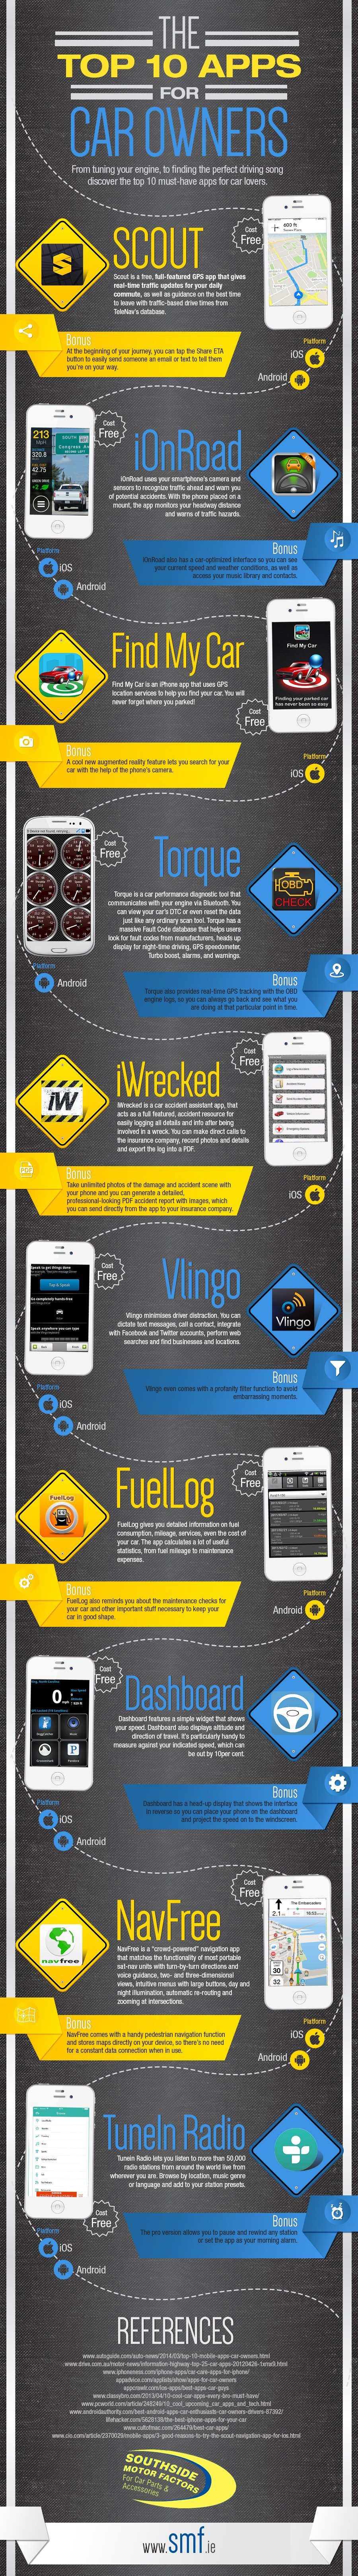 Top 10 Apps for Cars